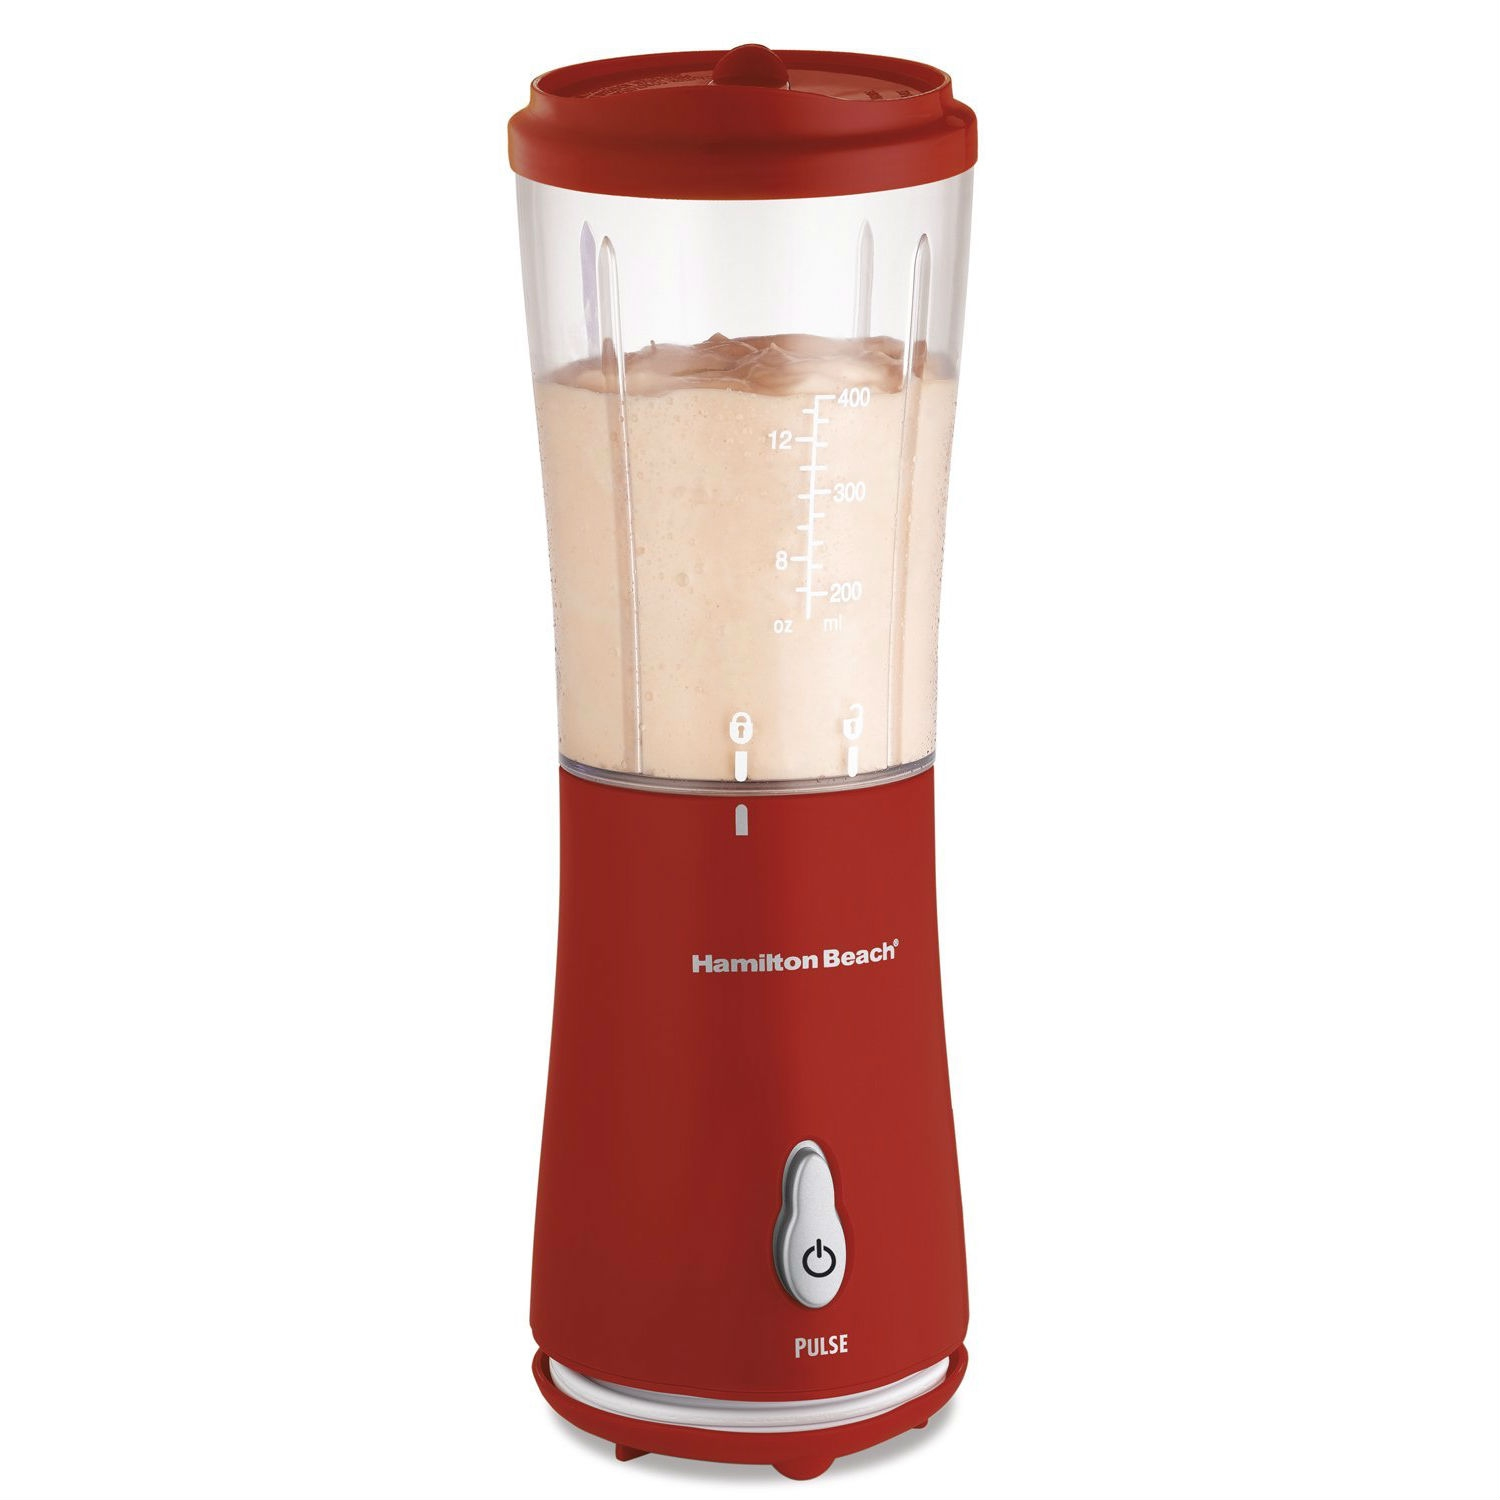 Rushing through breakfast or skimping on your health with vending machine drinks is no way to start out the day or live a healthy lifestyle. Instead, invest in a personal-size blender that makes it easy to have a nutritious beverage on the go. That's right, this 175-Watt Single Serve Personal Blender in Red with Clear BPA Free Jar delivers all the delicious-tasting flavors of restaurant smoothies and frozen drinks at a fraction of the price. What's more, this little blender lets you personalize your recipes, perfect your mixology skills and control your portions, all in one. With its durable stainless steel blades and pulse blending action, it's fully equipped to prepare a variety of great-tasting smoothies, shakes and more. Don't let its space-saving design fool you. The versatile blending container functions as a mixing jar one minute and doubles as a portable travel mug with attachable drinking lid the next. For a lightweight, easy-to-use, inexpensive personal blender, the blender is well worth the investment. Just imagine all the recipe possibilities, extra storage room and money you're saving.